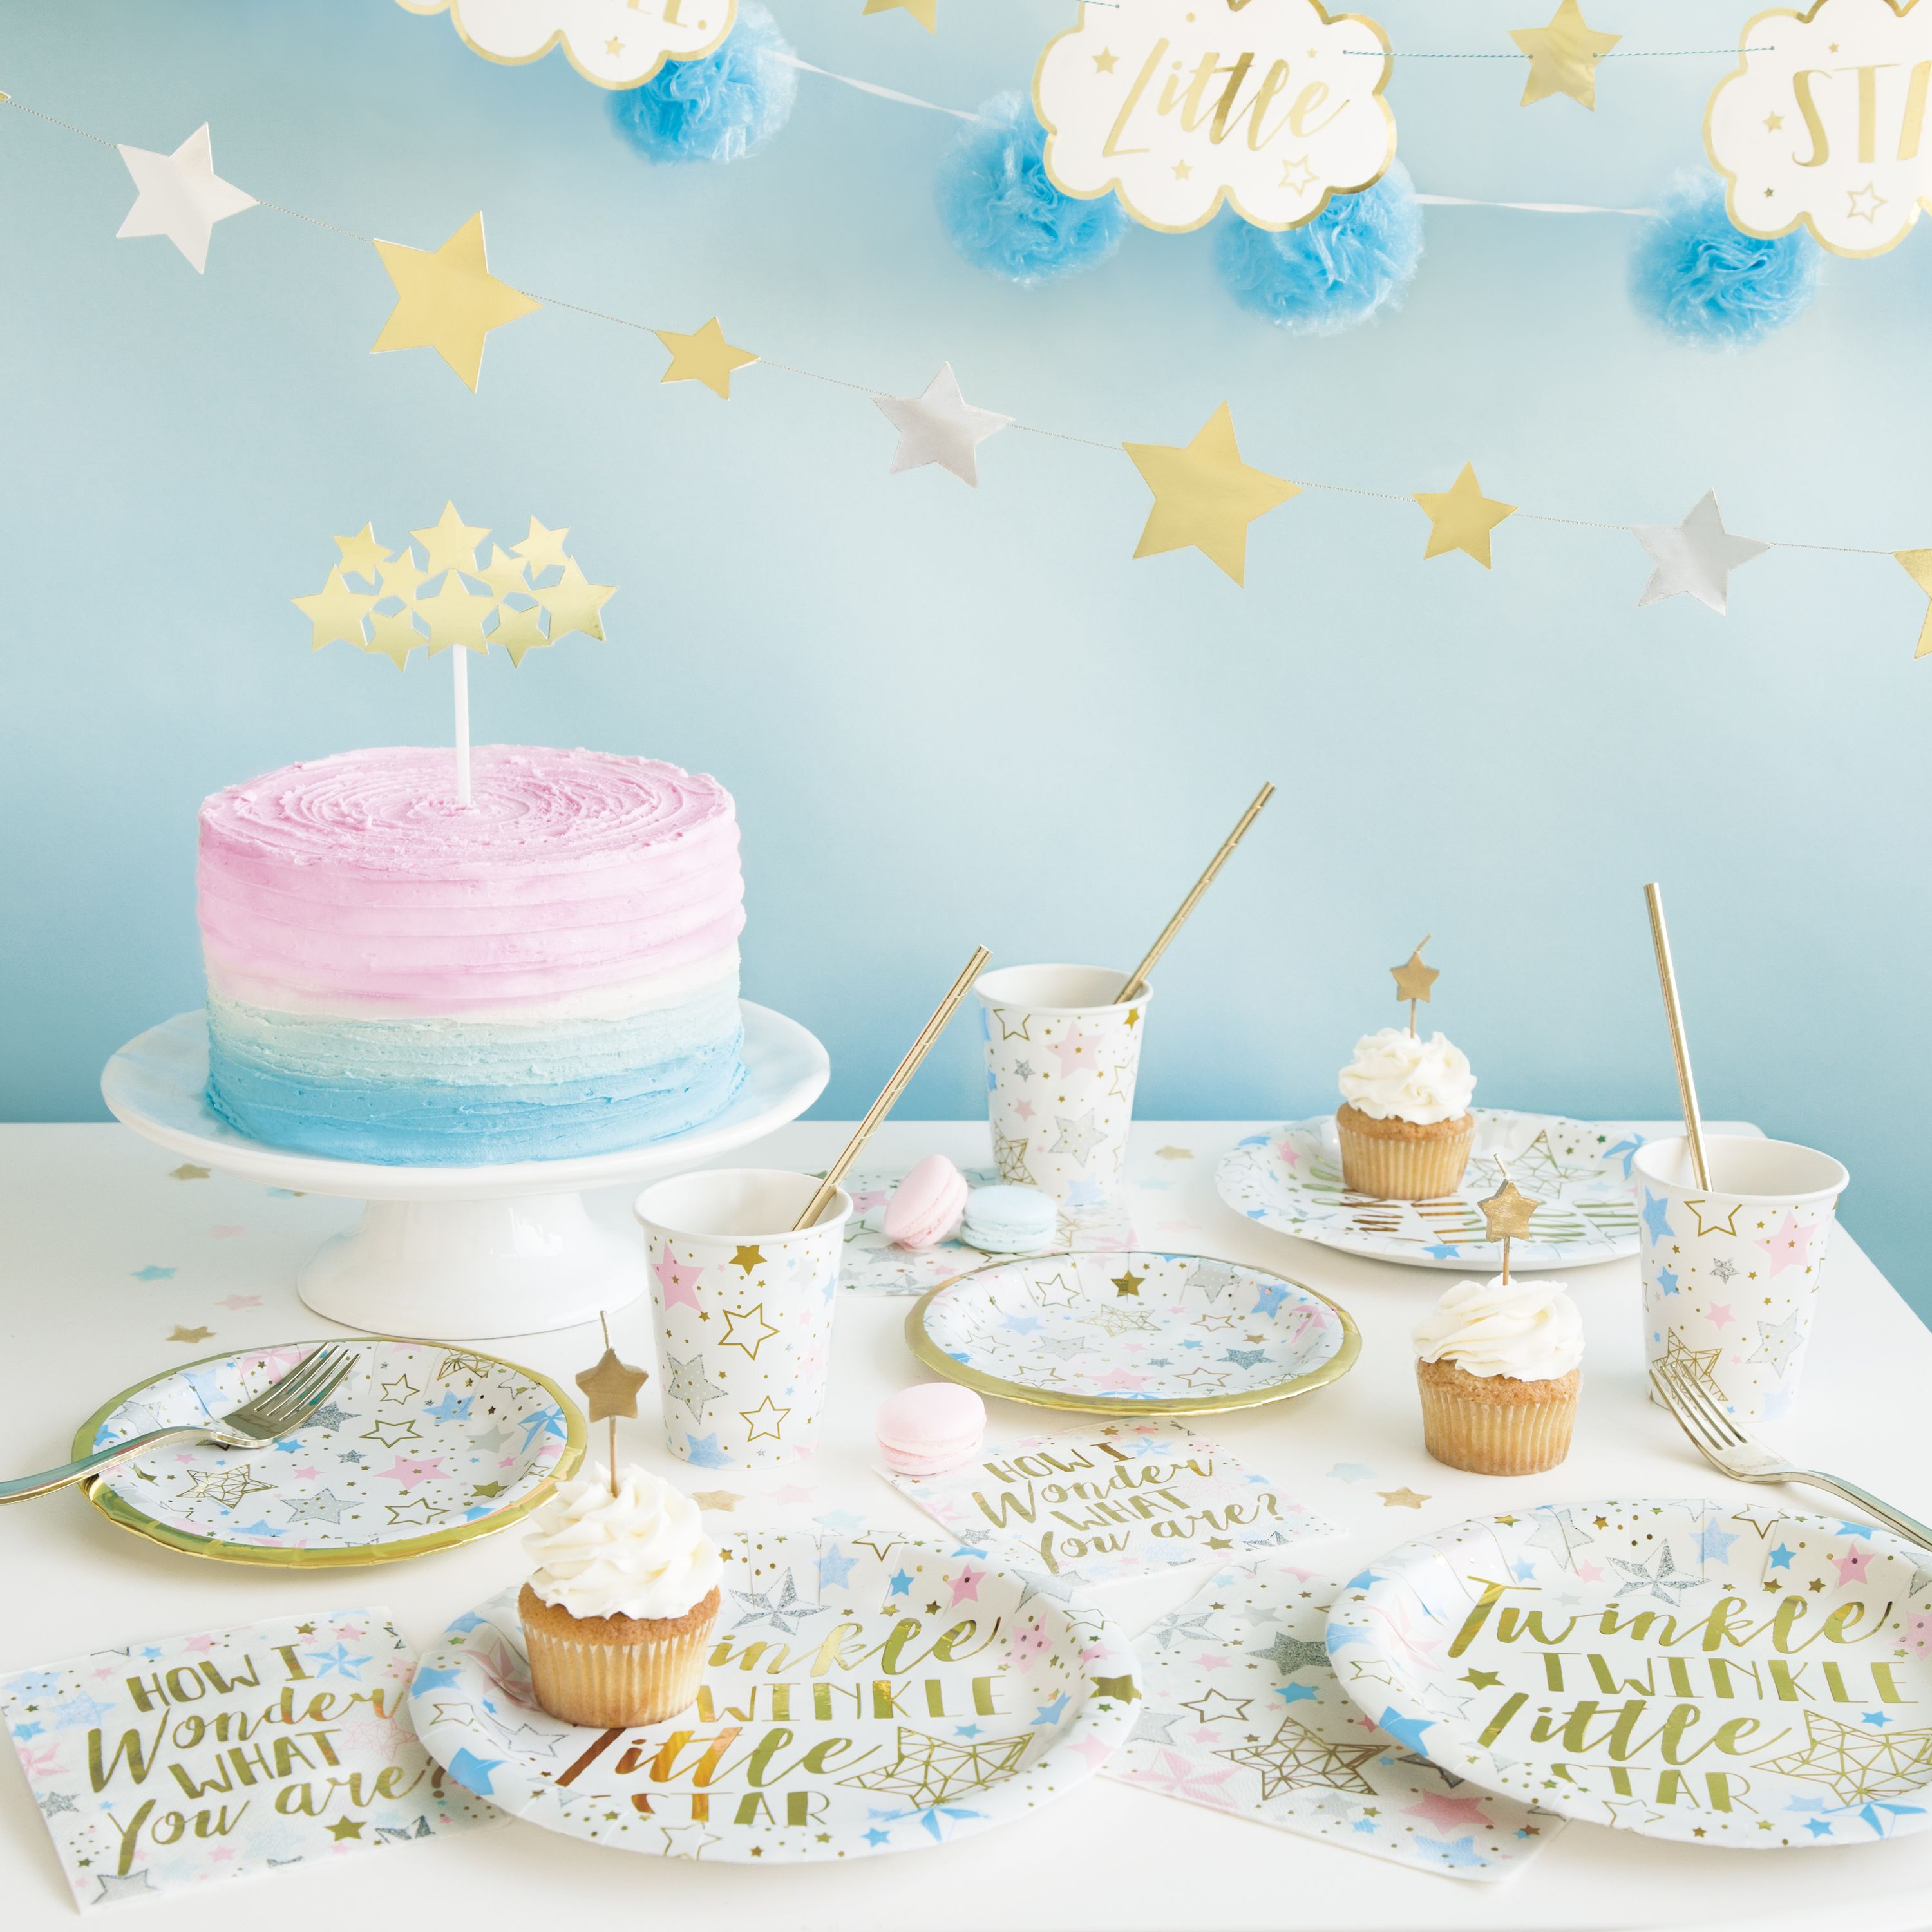 Pin By Katie Harris On Gender Reveal In 2020 Star Baby Showers Twinkle Twinkle Little Star Baby Shower Balloons